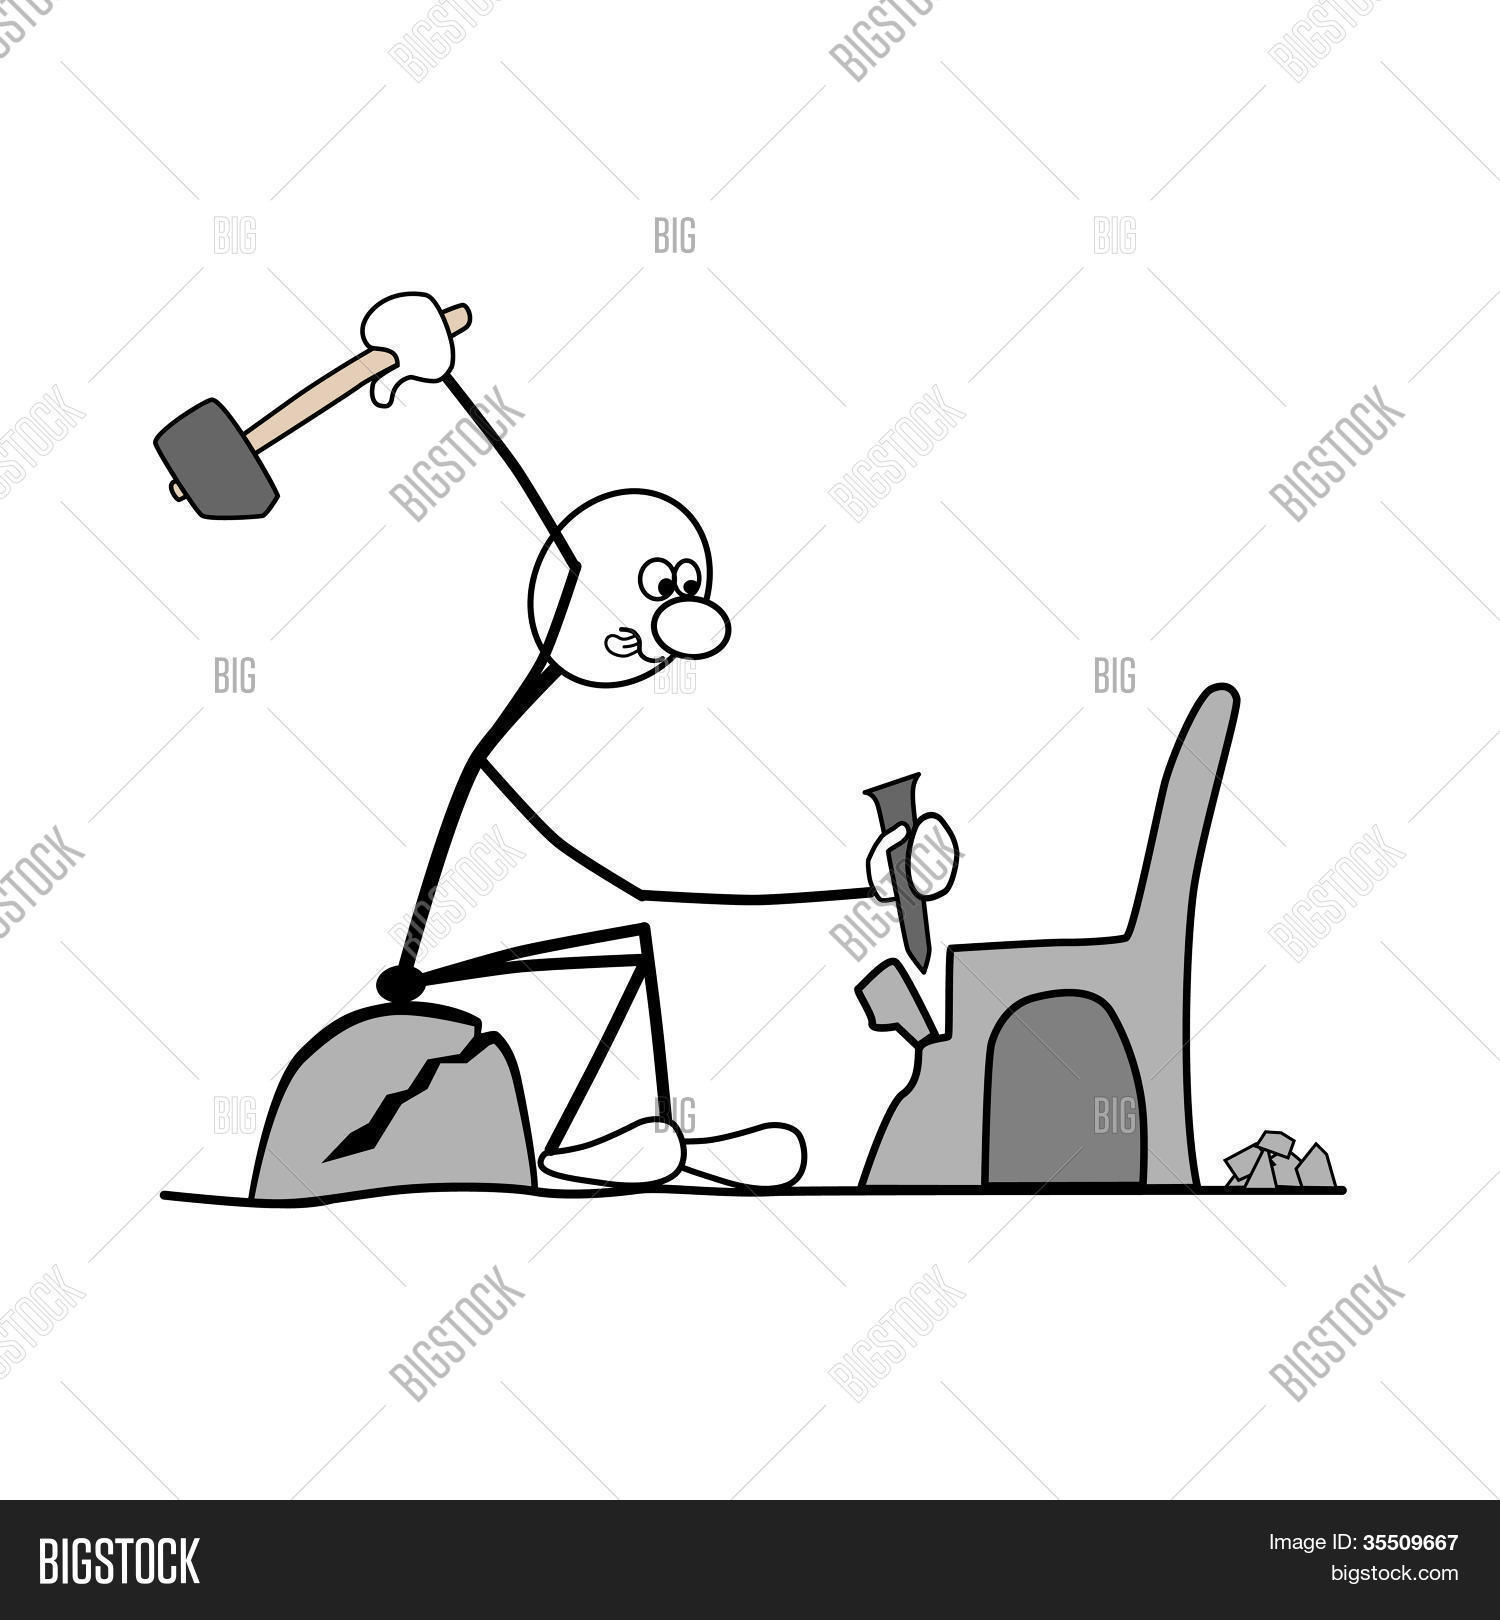 better to make a chair than sitting on the bare rock. Stock Vector.